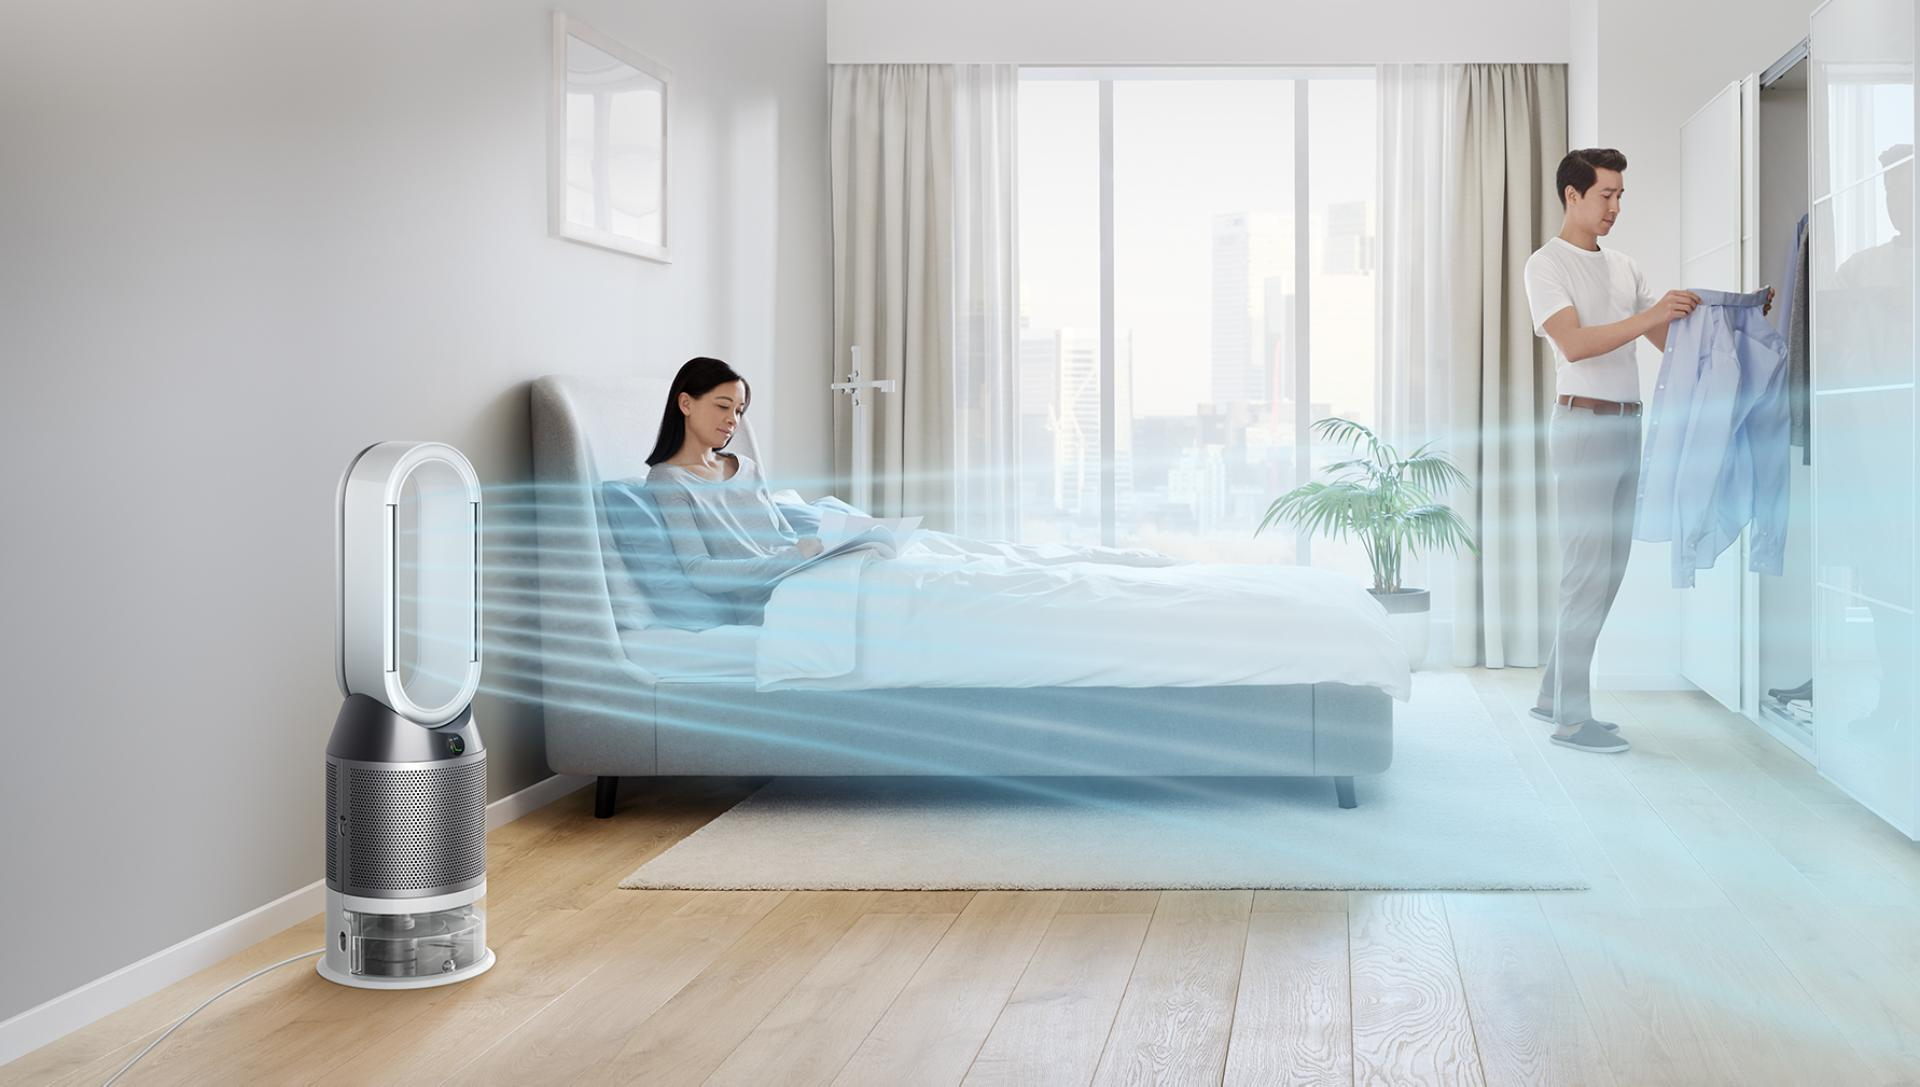 A woman relaxes in bed while her Dyson purifier humidifier fan circulates air through the room